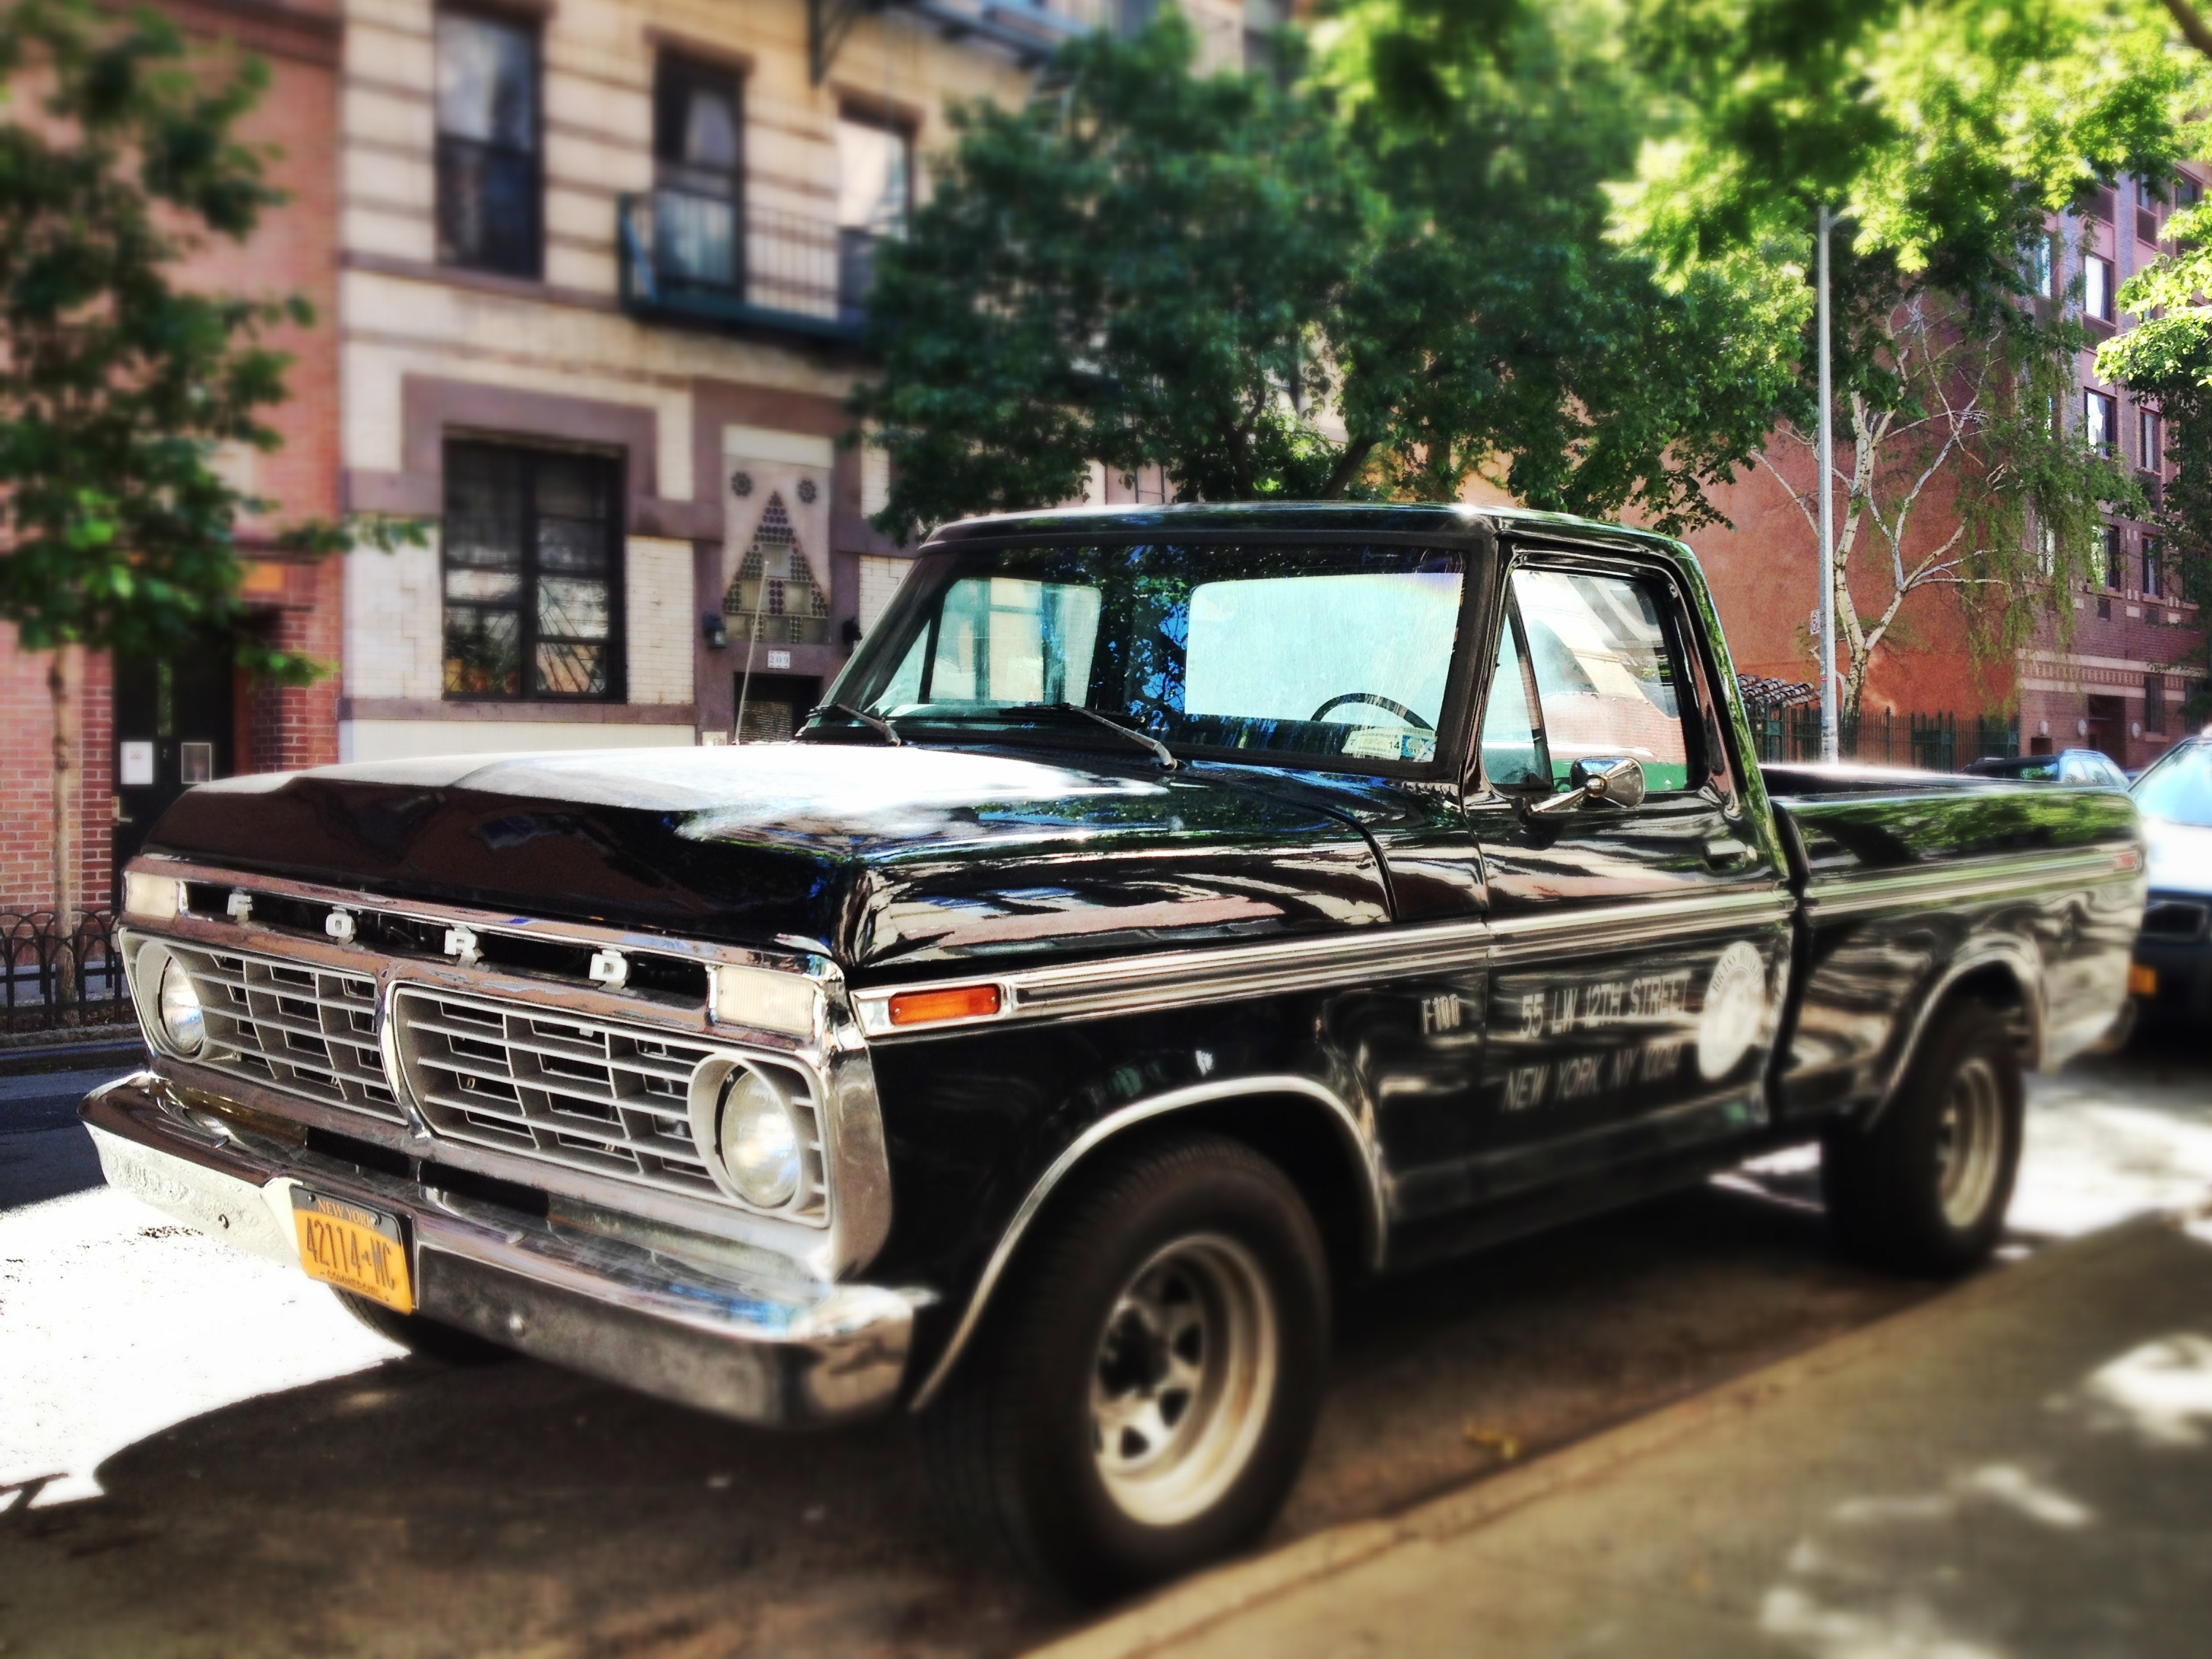 1975 Ford F100 Pick-Up. - On the Real.